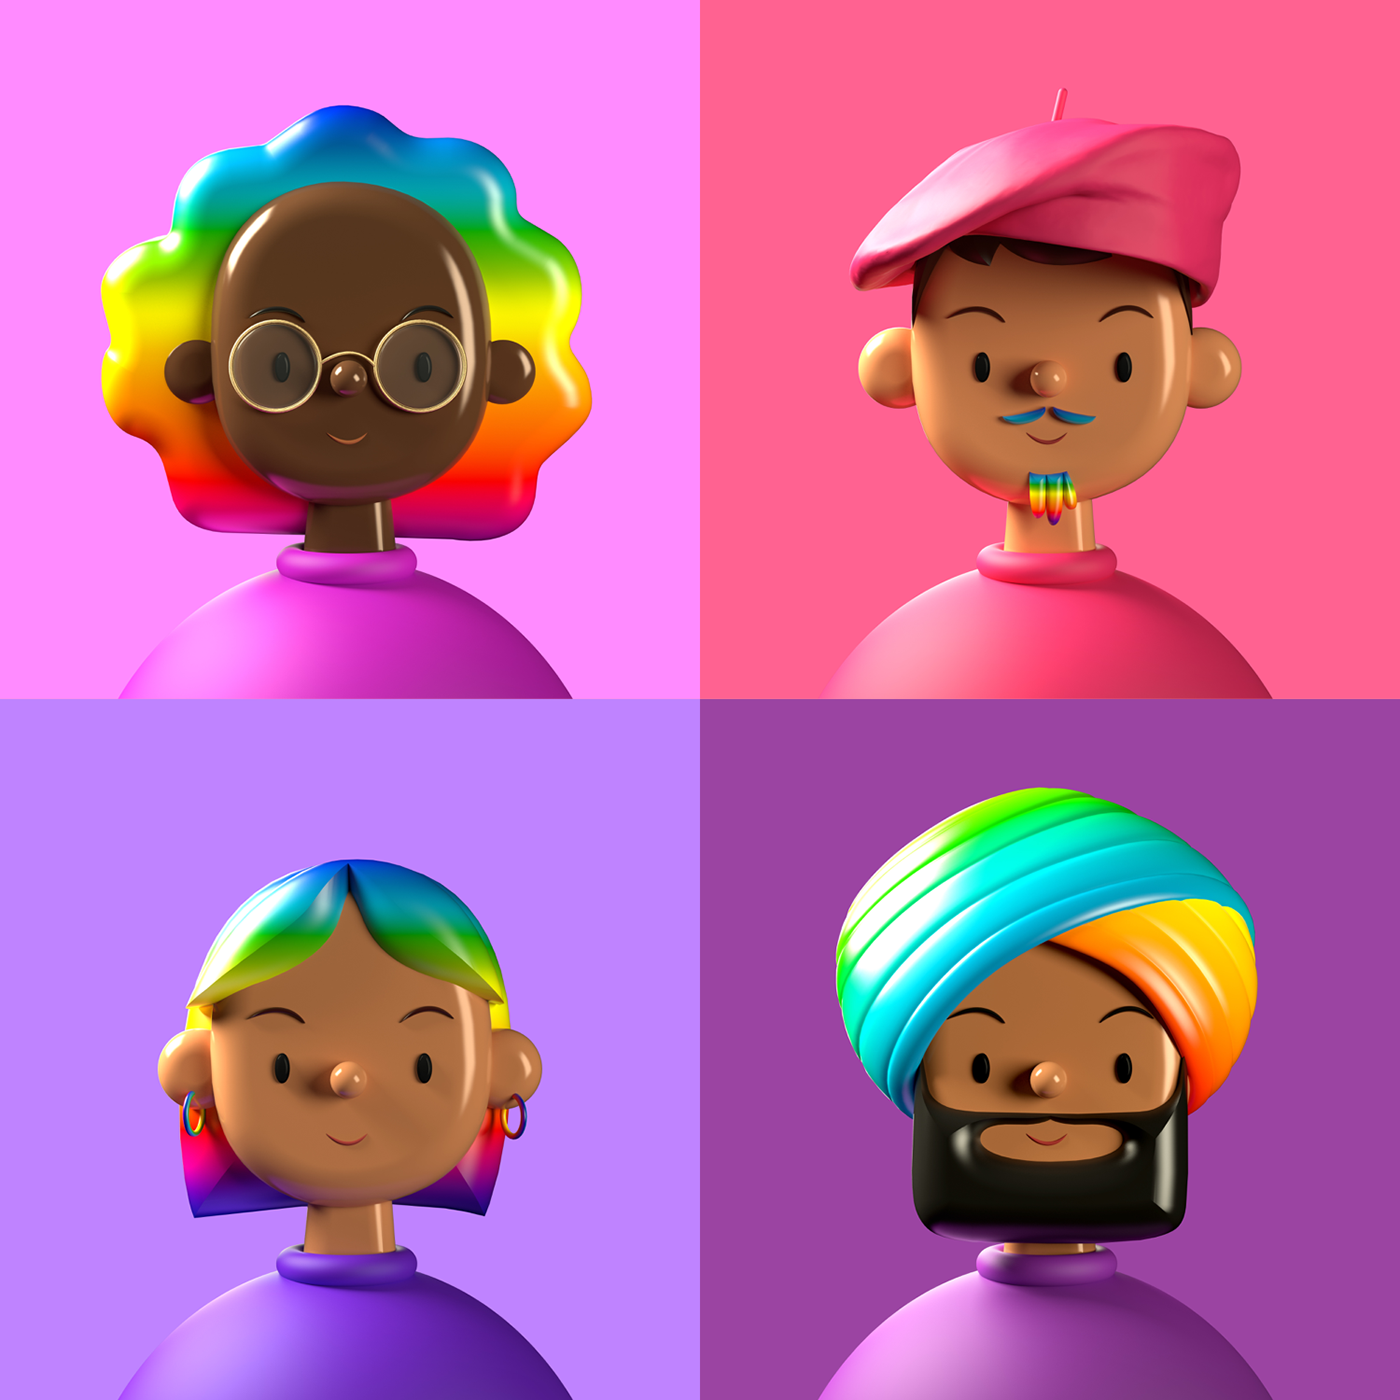 https://www.behance.net/gallery/99666153/Toy-Faces-Library-Celebrates-Pride-Month?tracking_source=search_projects_recommended%7CPRIDE